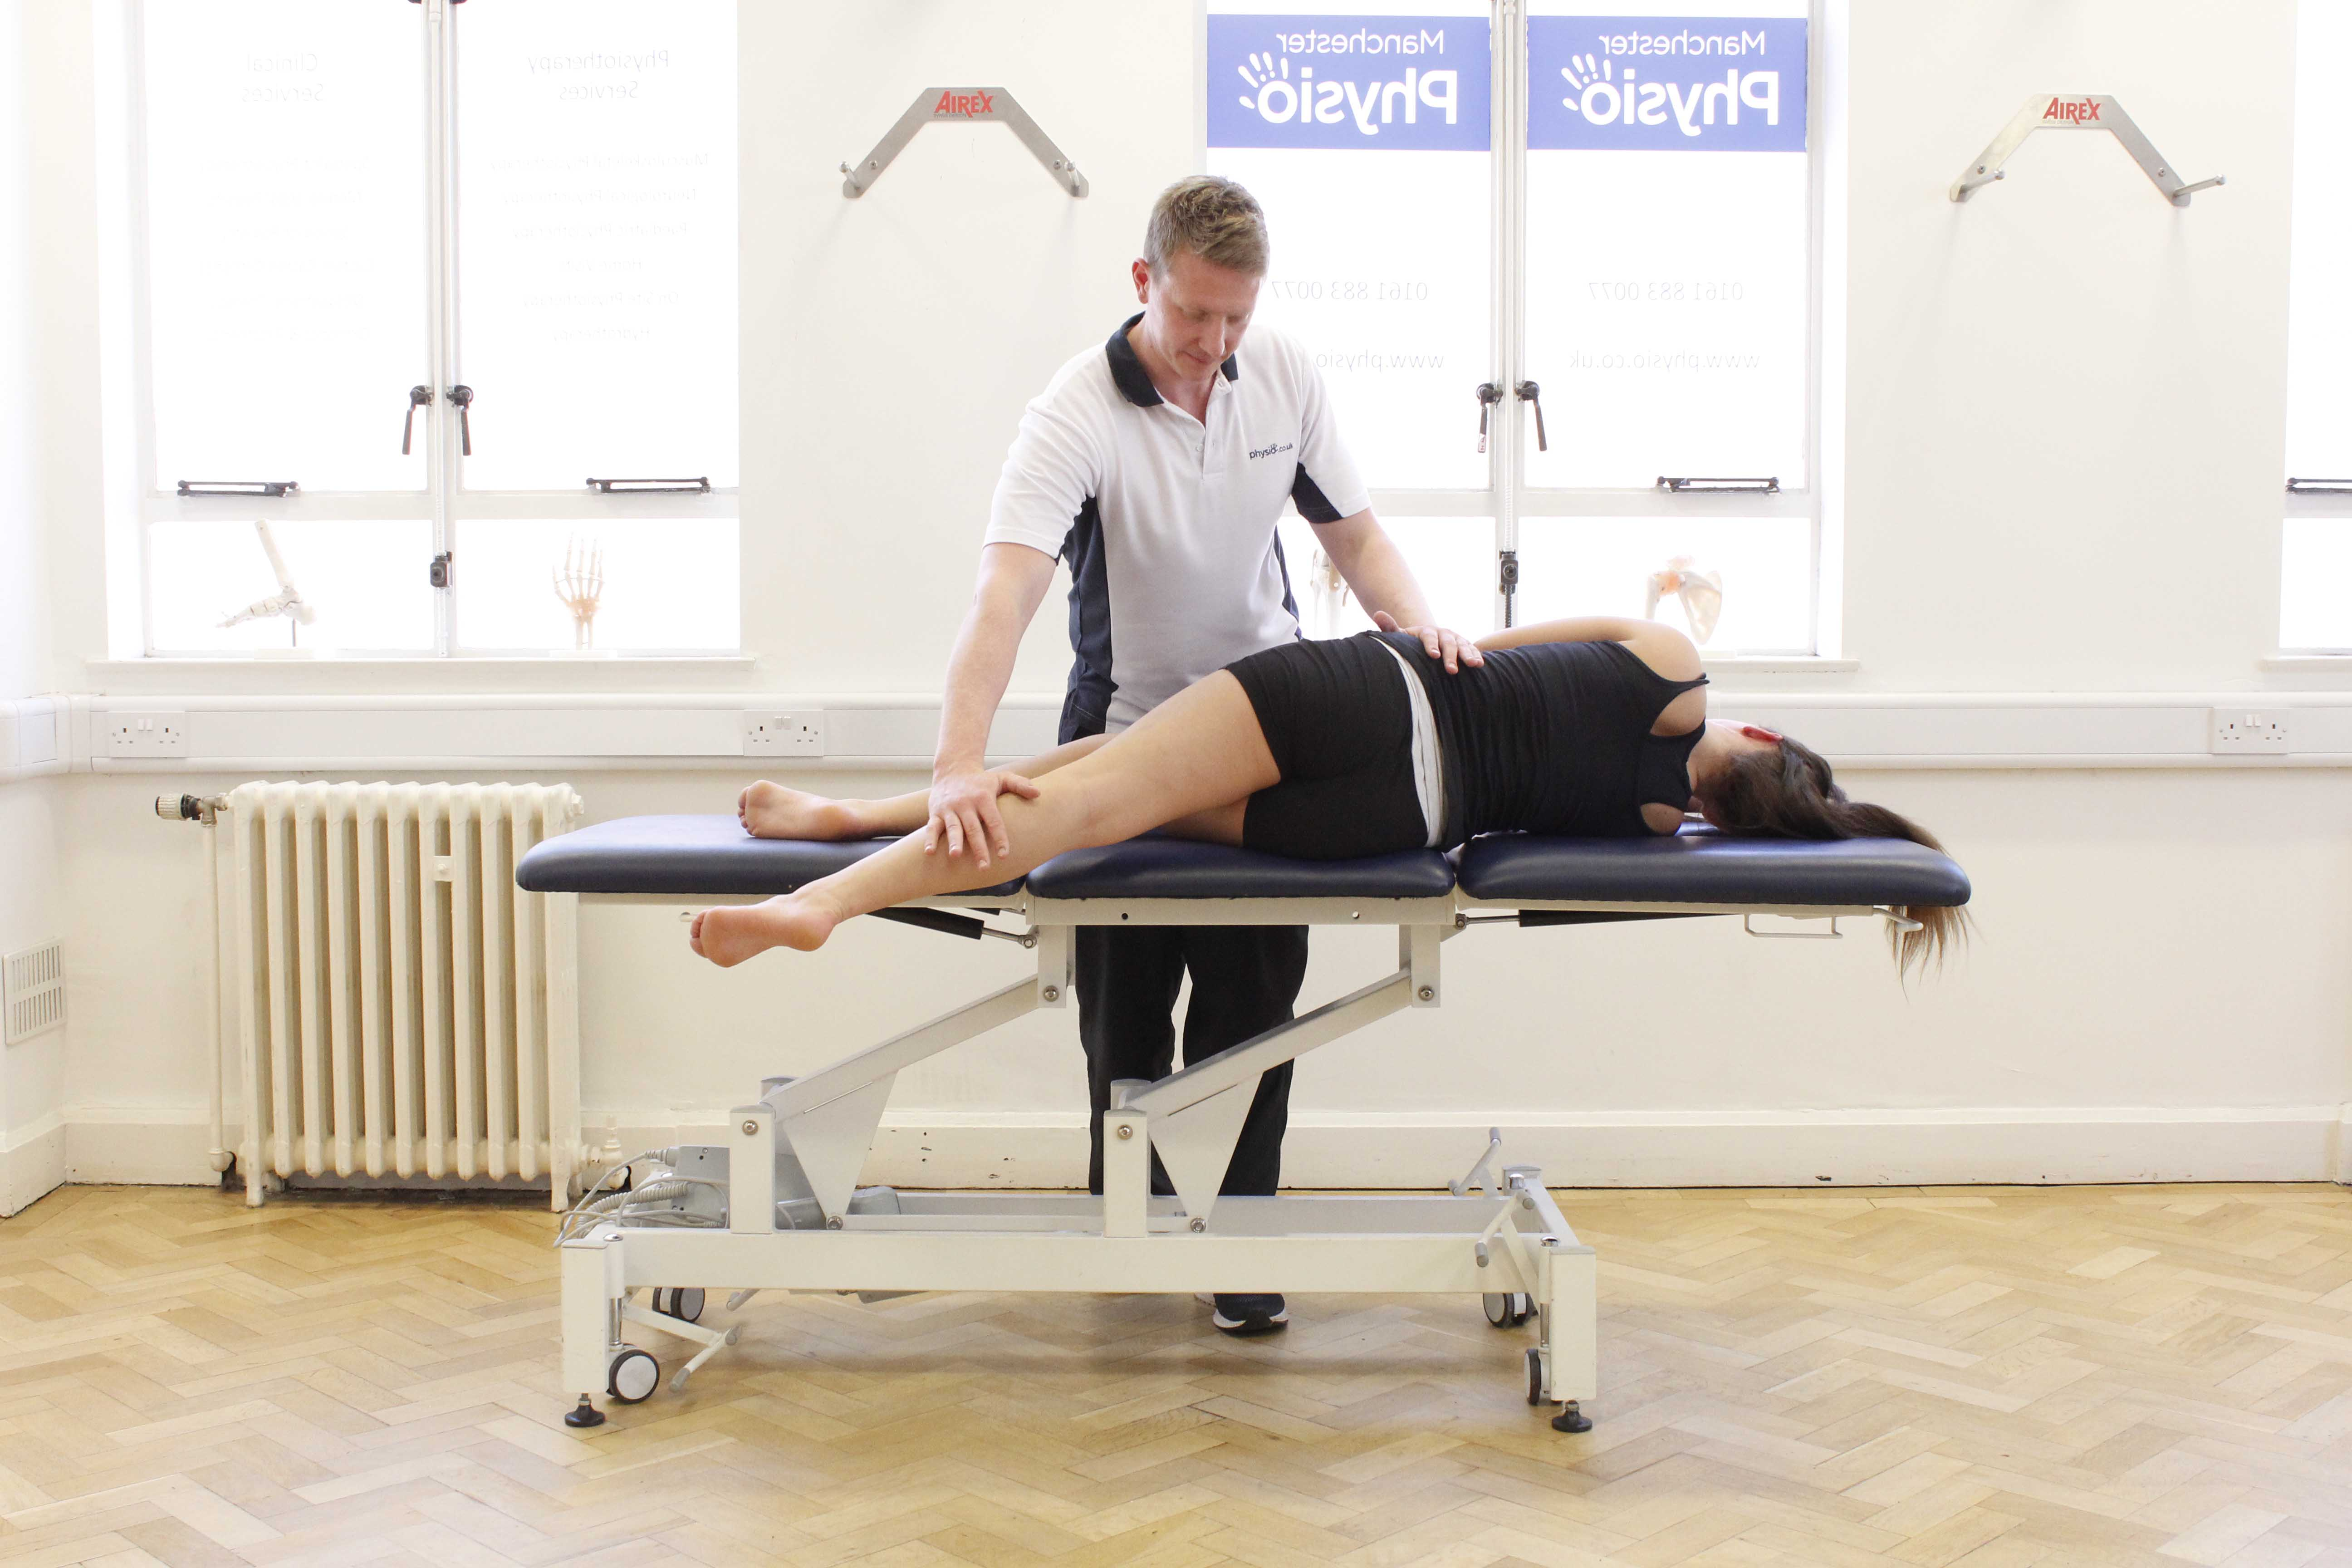 Mobility exercises and stretches of the hip and pelvis performed by an experienced physiotherapist